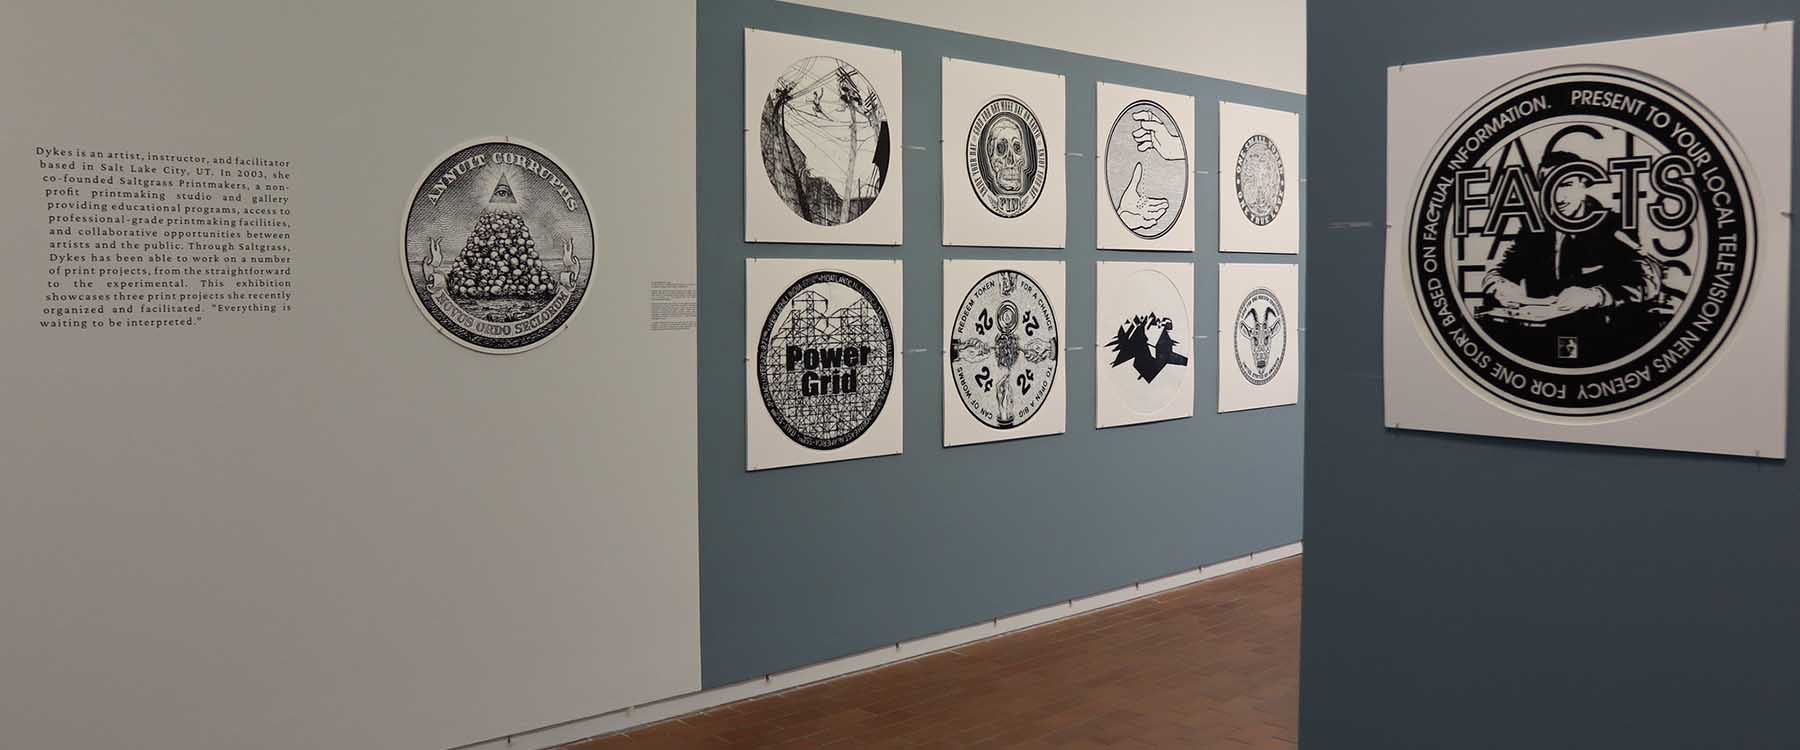 """""""Signs + Gestures,"""" an exhibition in the Projective Eye Gallery in The Dubois Center at UNC Charlotte Center City, showcases two collaborative printmaking projects organized, curated and produced by master printmaker Stefanie Dykes."""